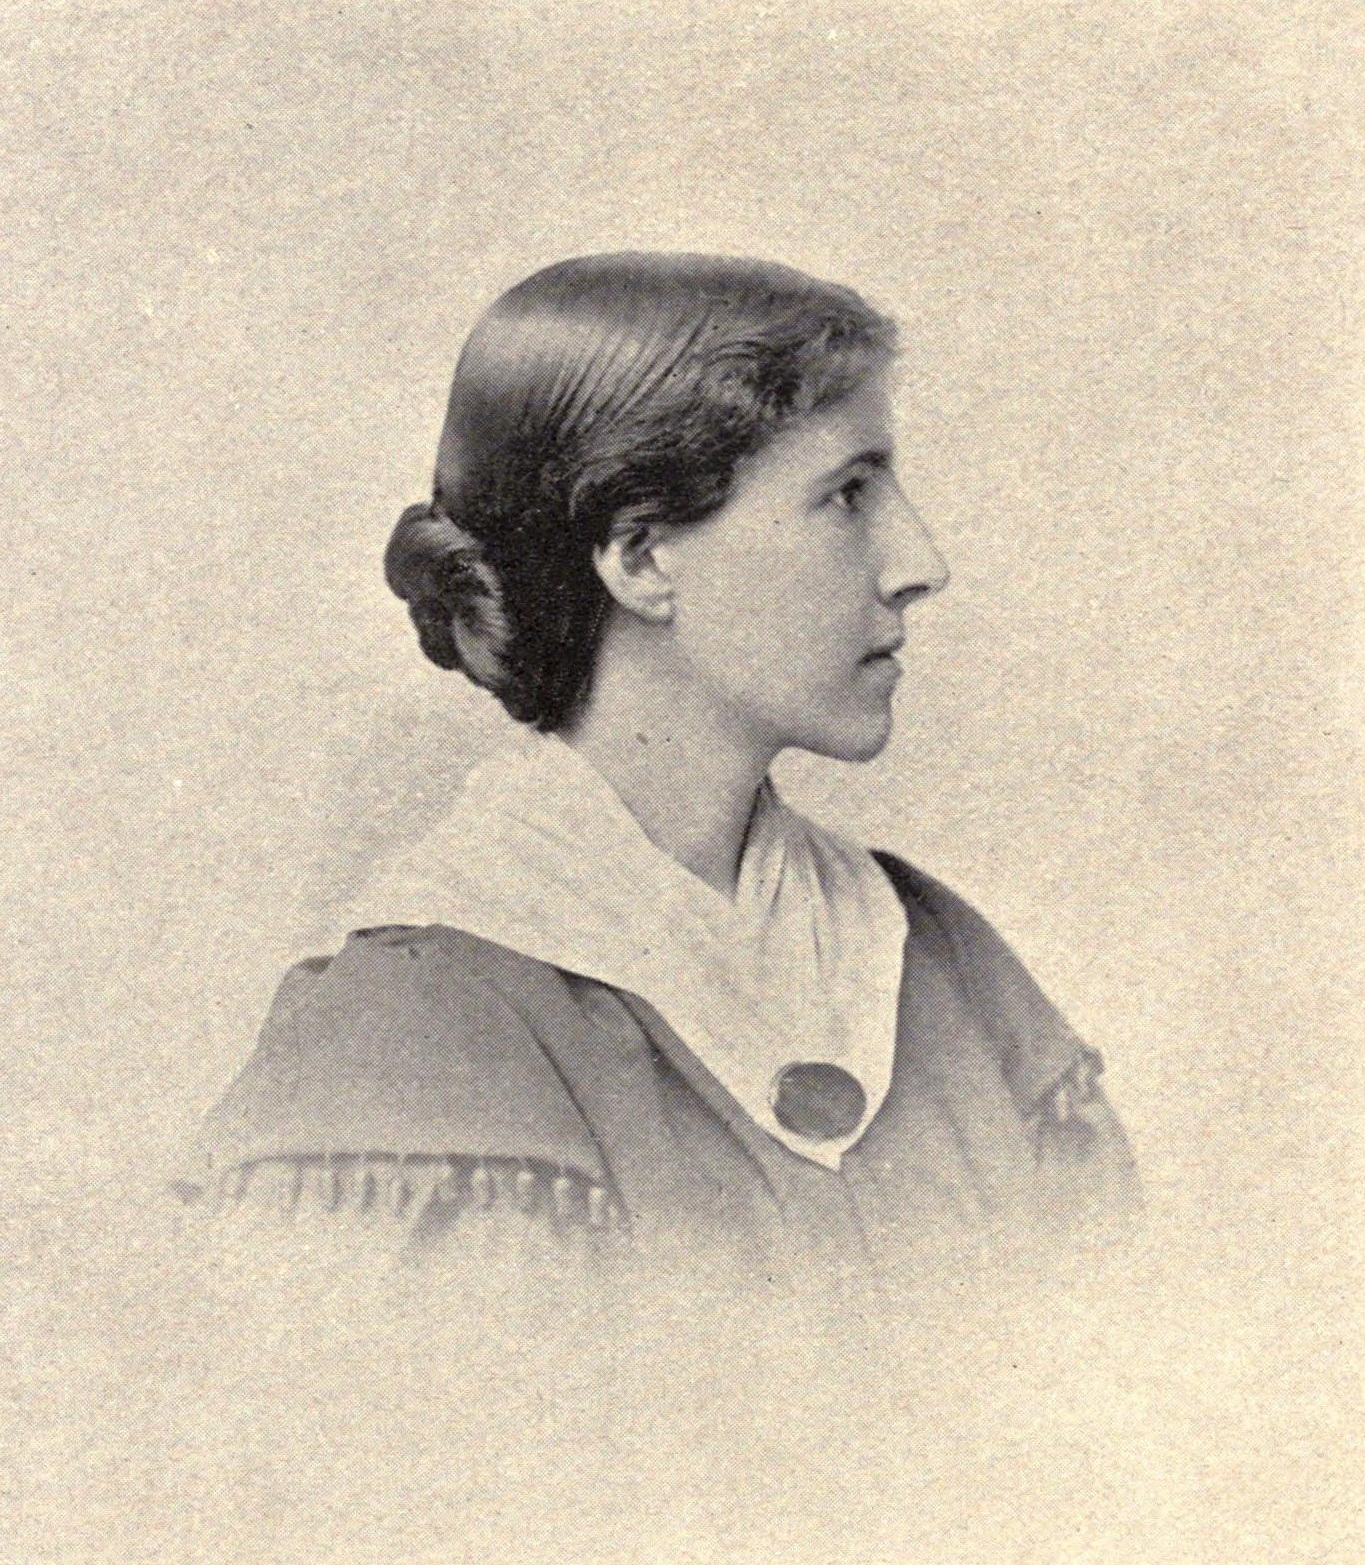 essay on my last duchess the yellow my last duchess analytical i  the yellow my last duchess analytical i writework english charlotte perkins gilman